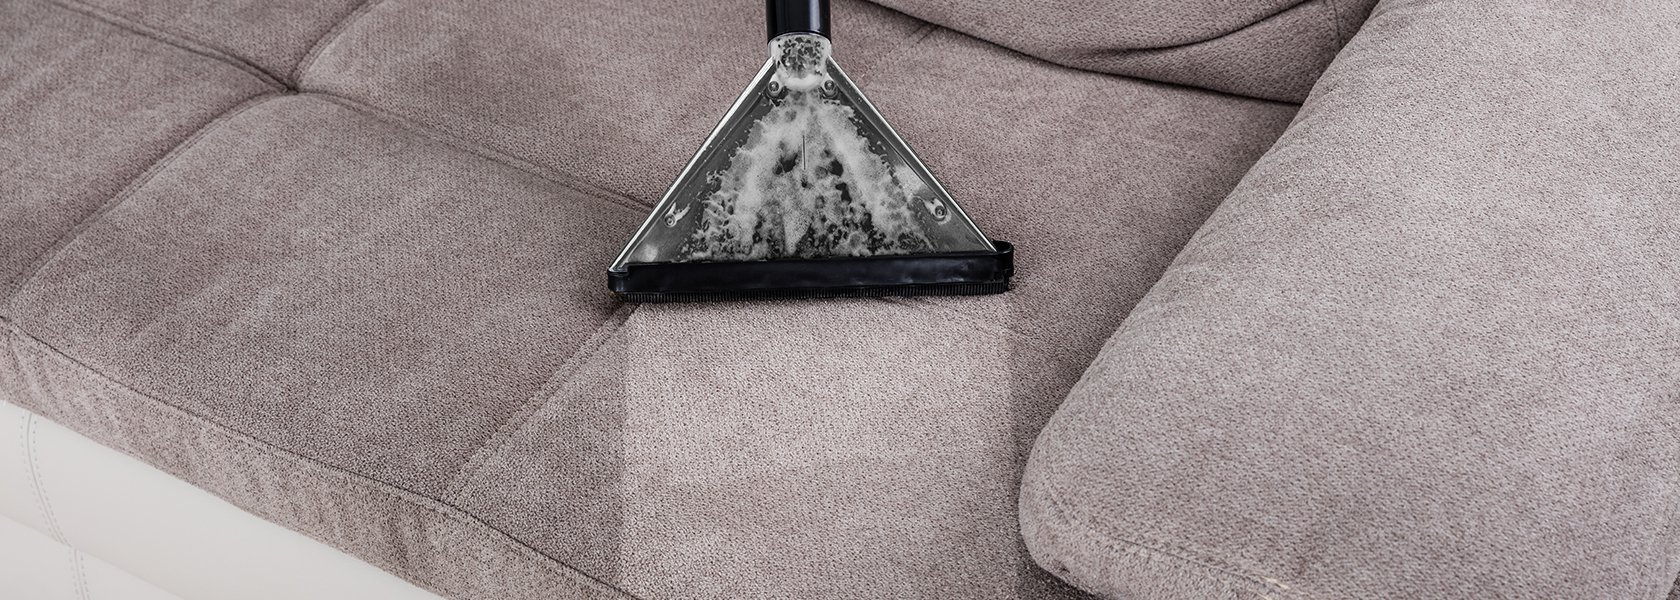 Effective Ways To Keep Your Couch Clean